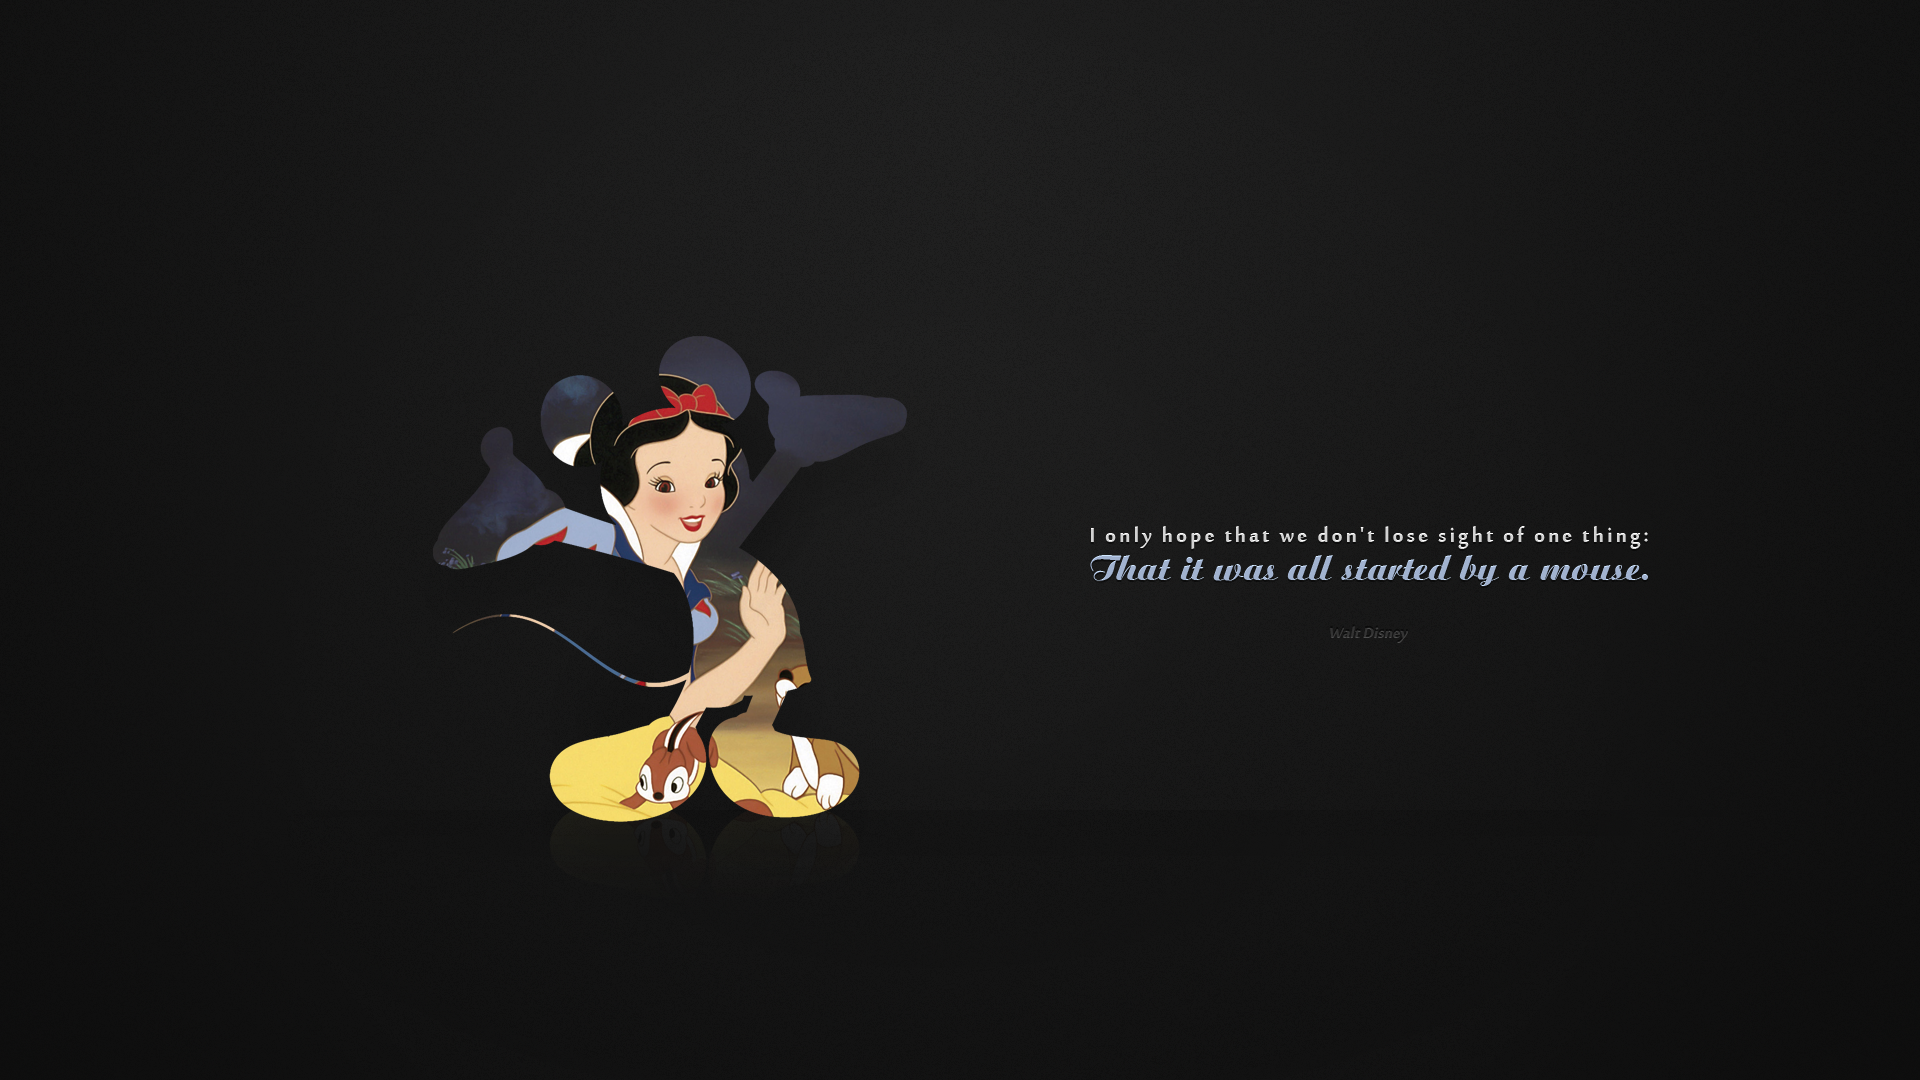 Walt Disney Quotes About Life 30 Inspirational Walt Disney Quotes About Dreams Family And Life